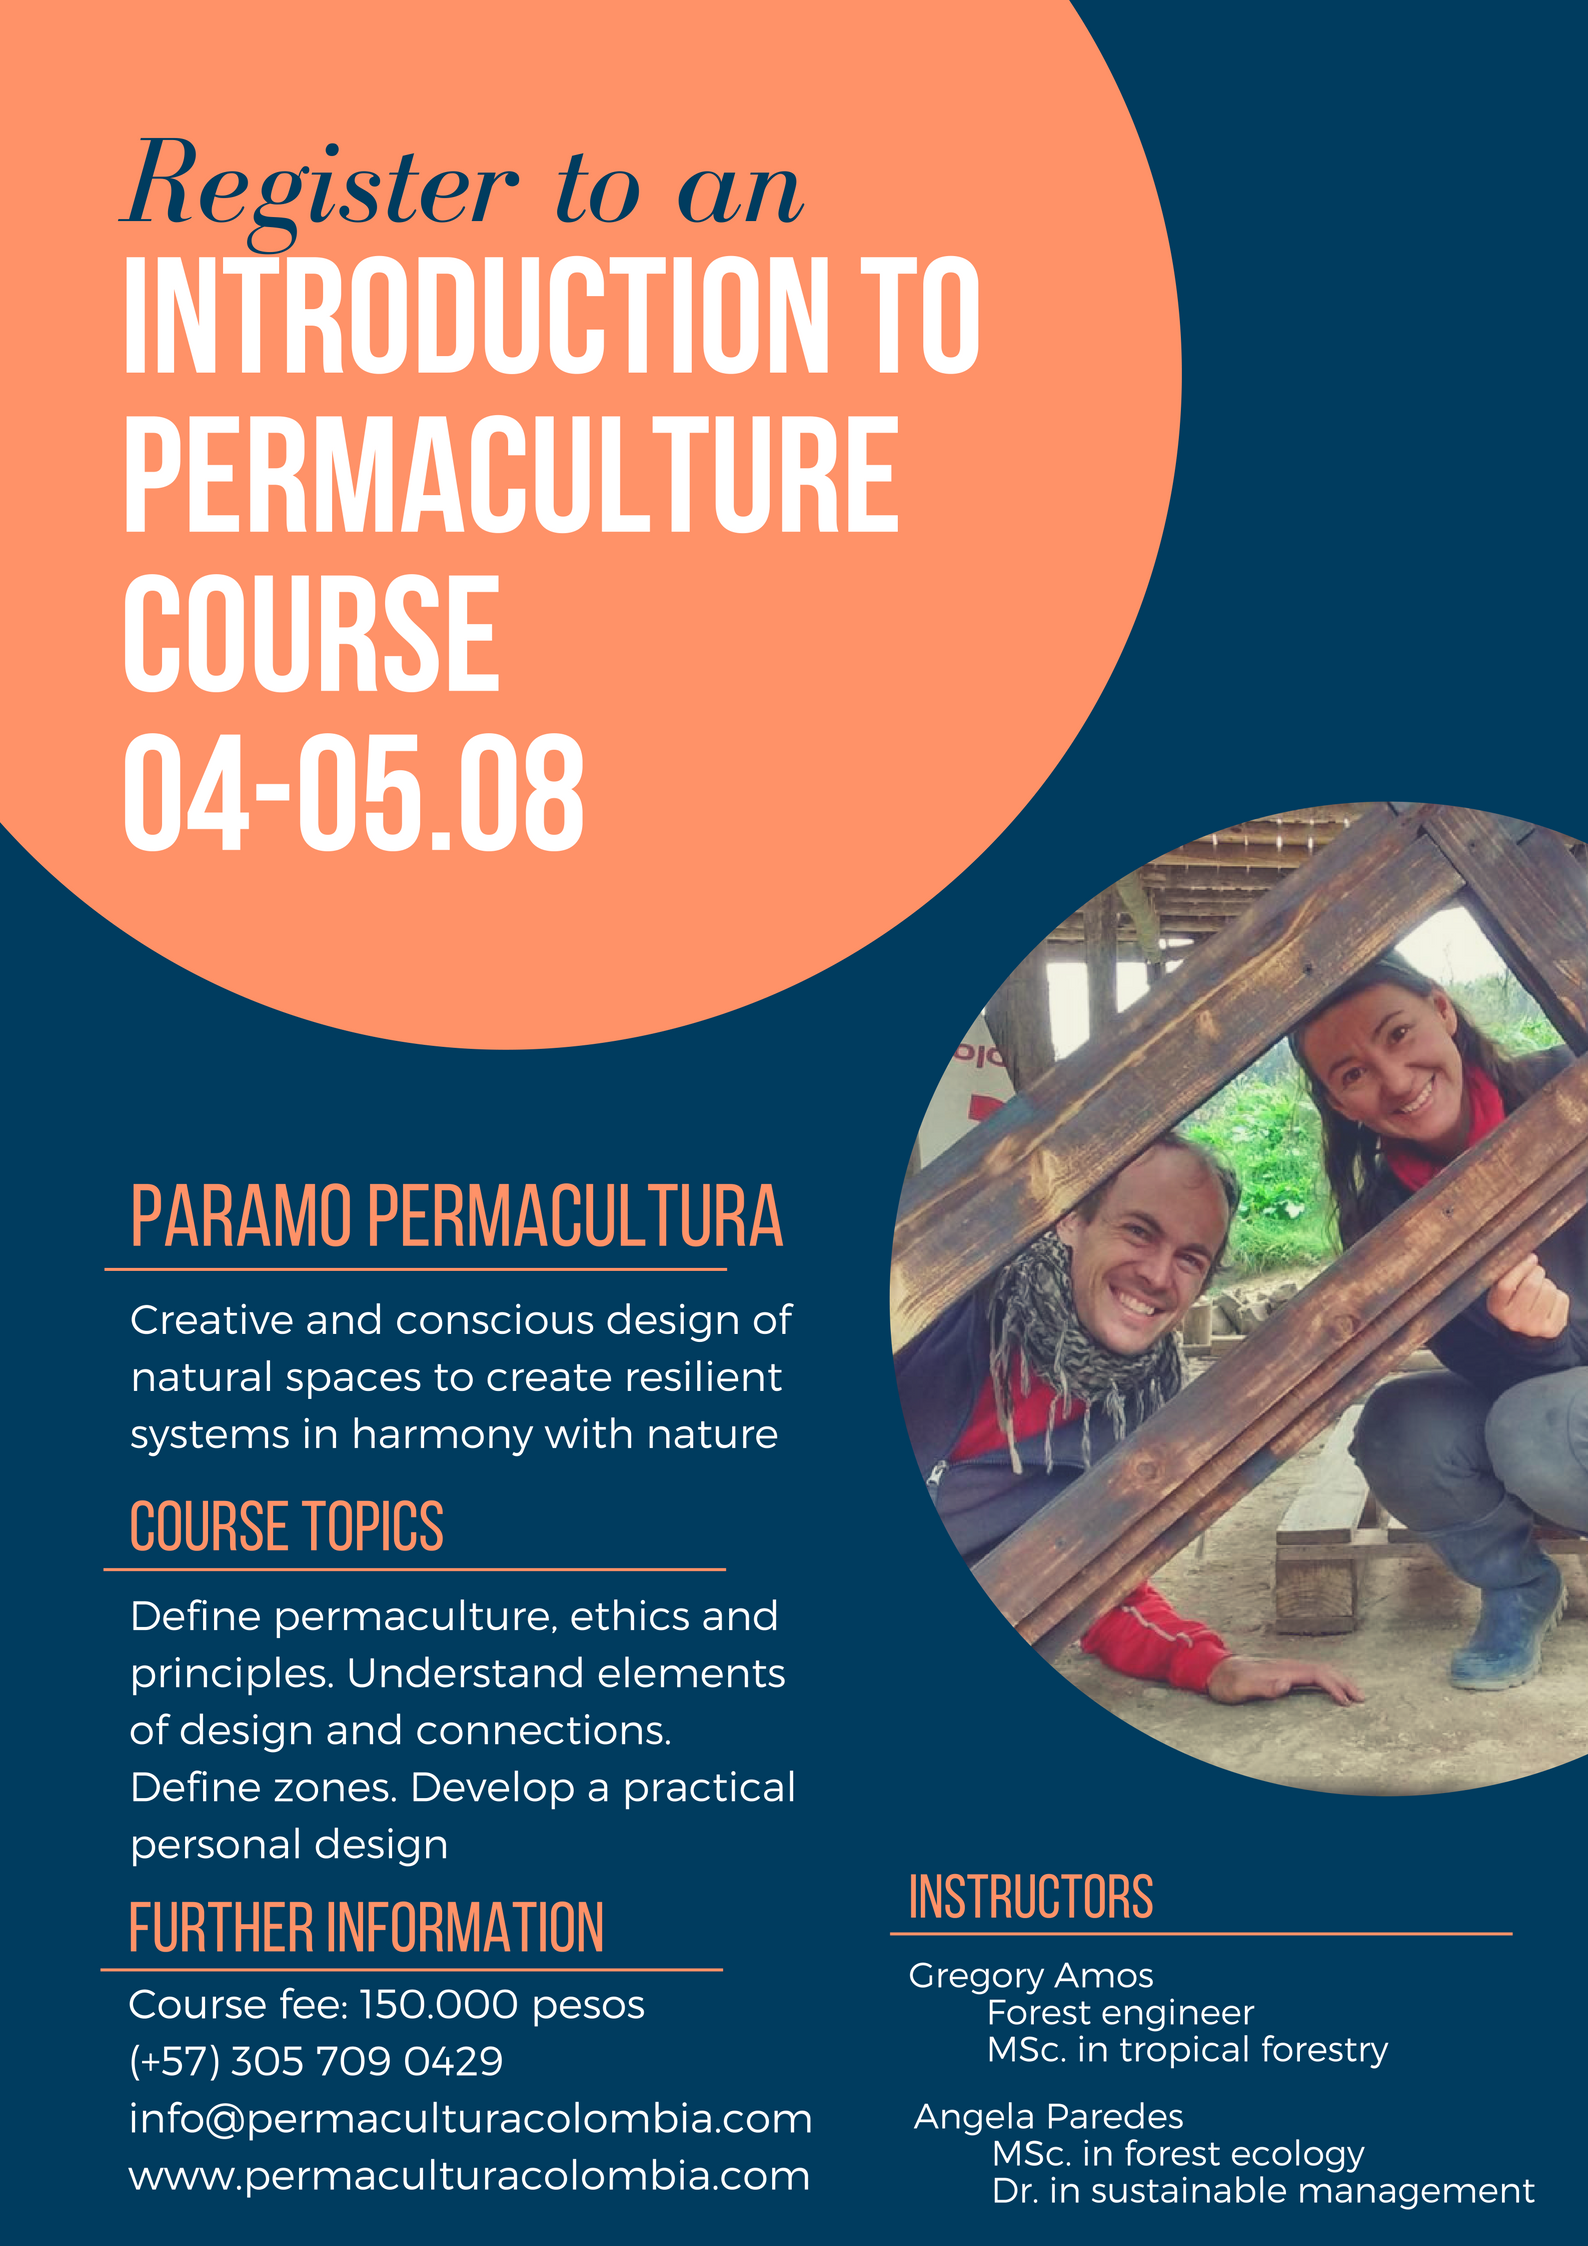 Introduction to Permaculture Course - August 2018